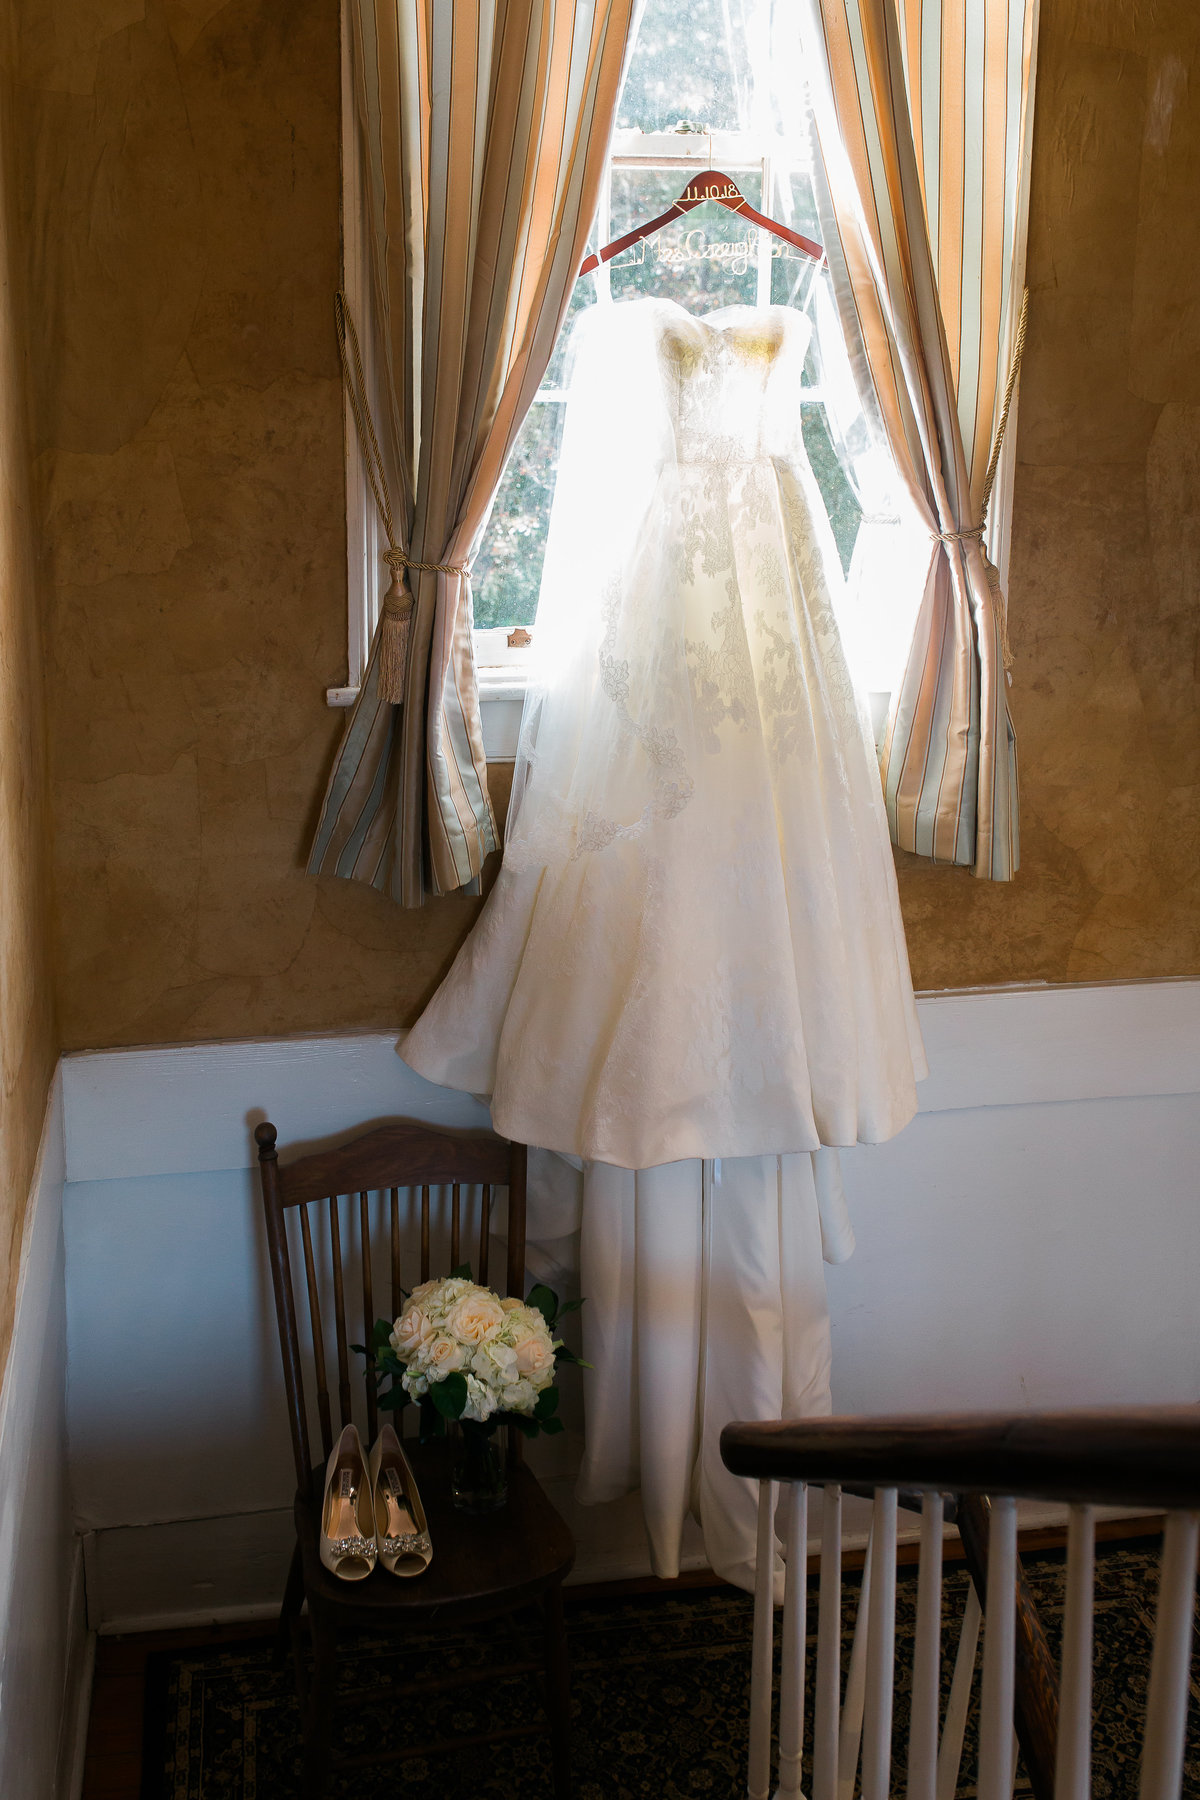 Charleston Weddings- Nancy Lempesis Photography - Wedding Phtography (35)